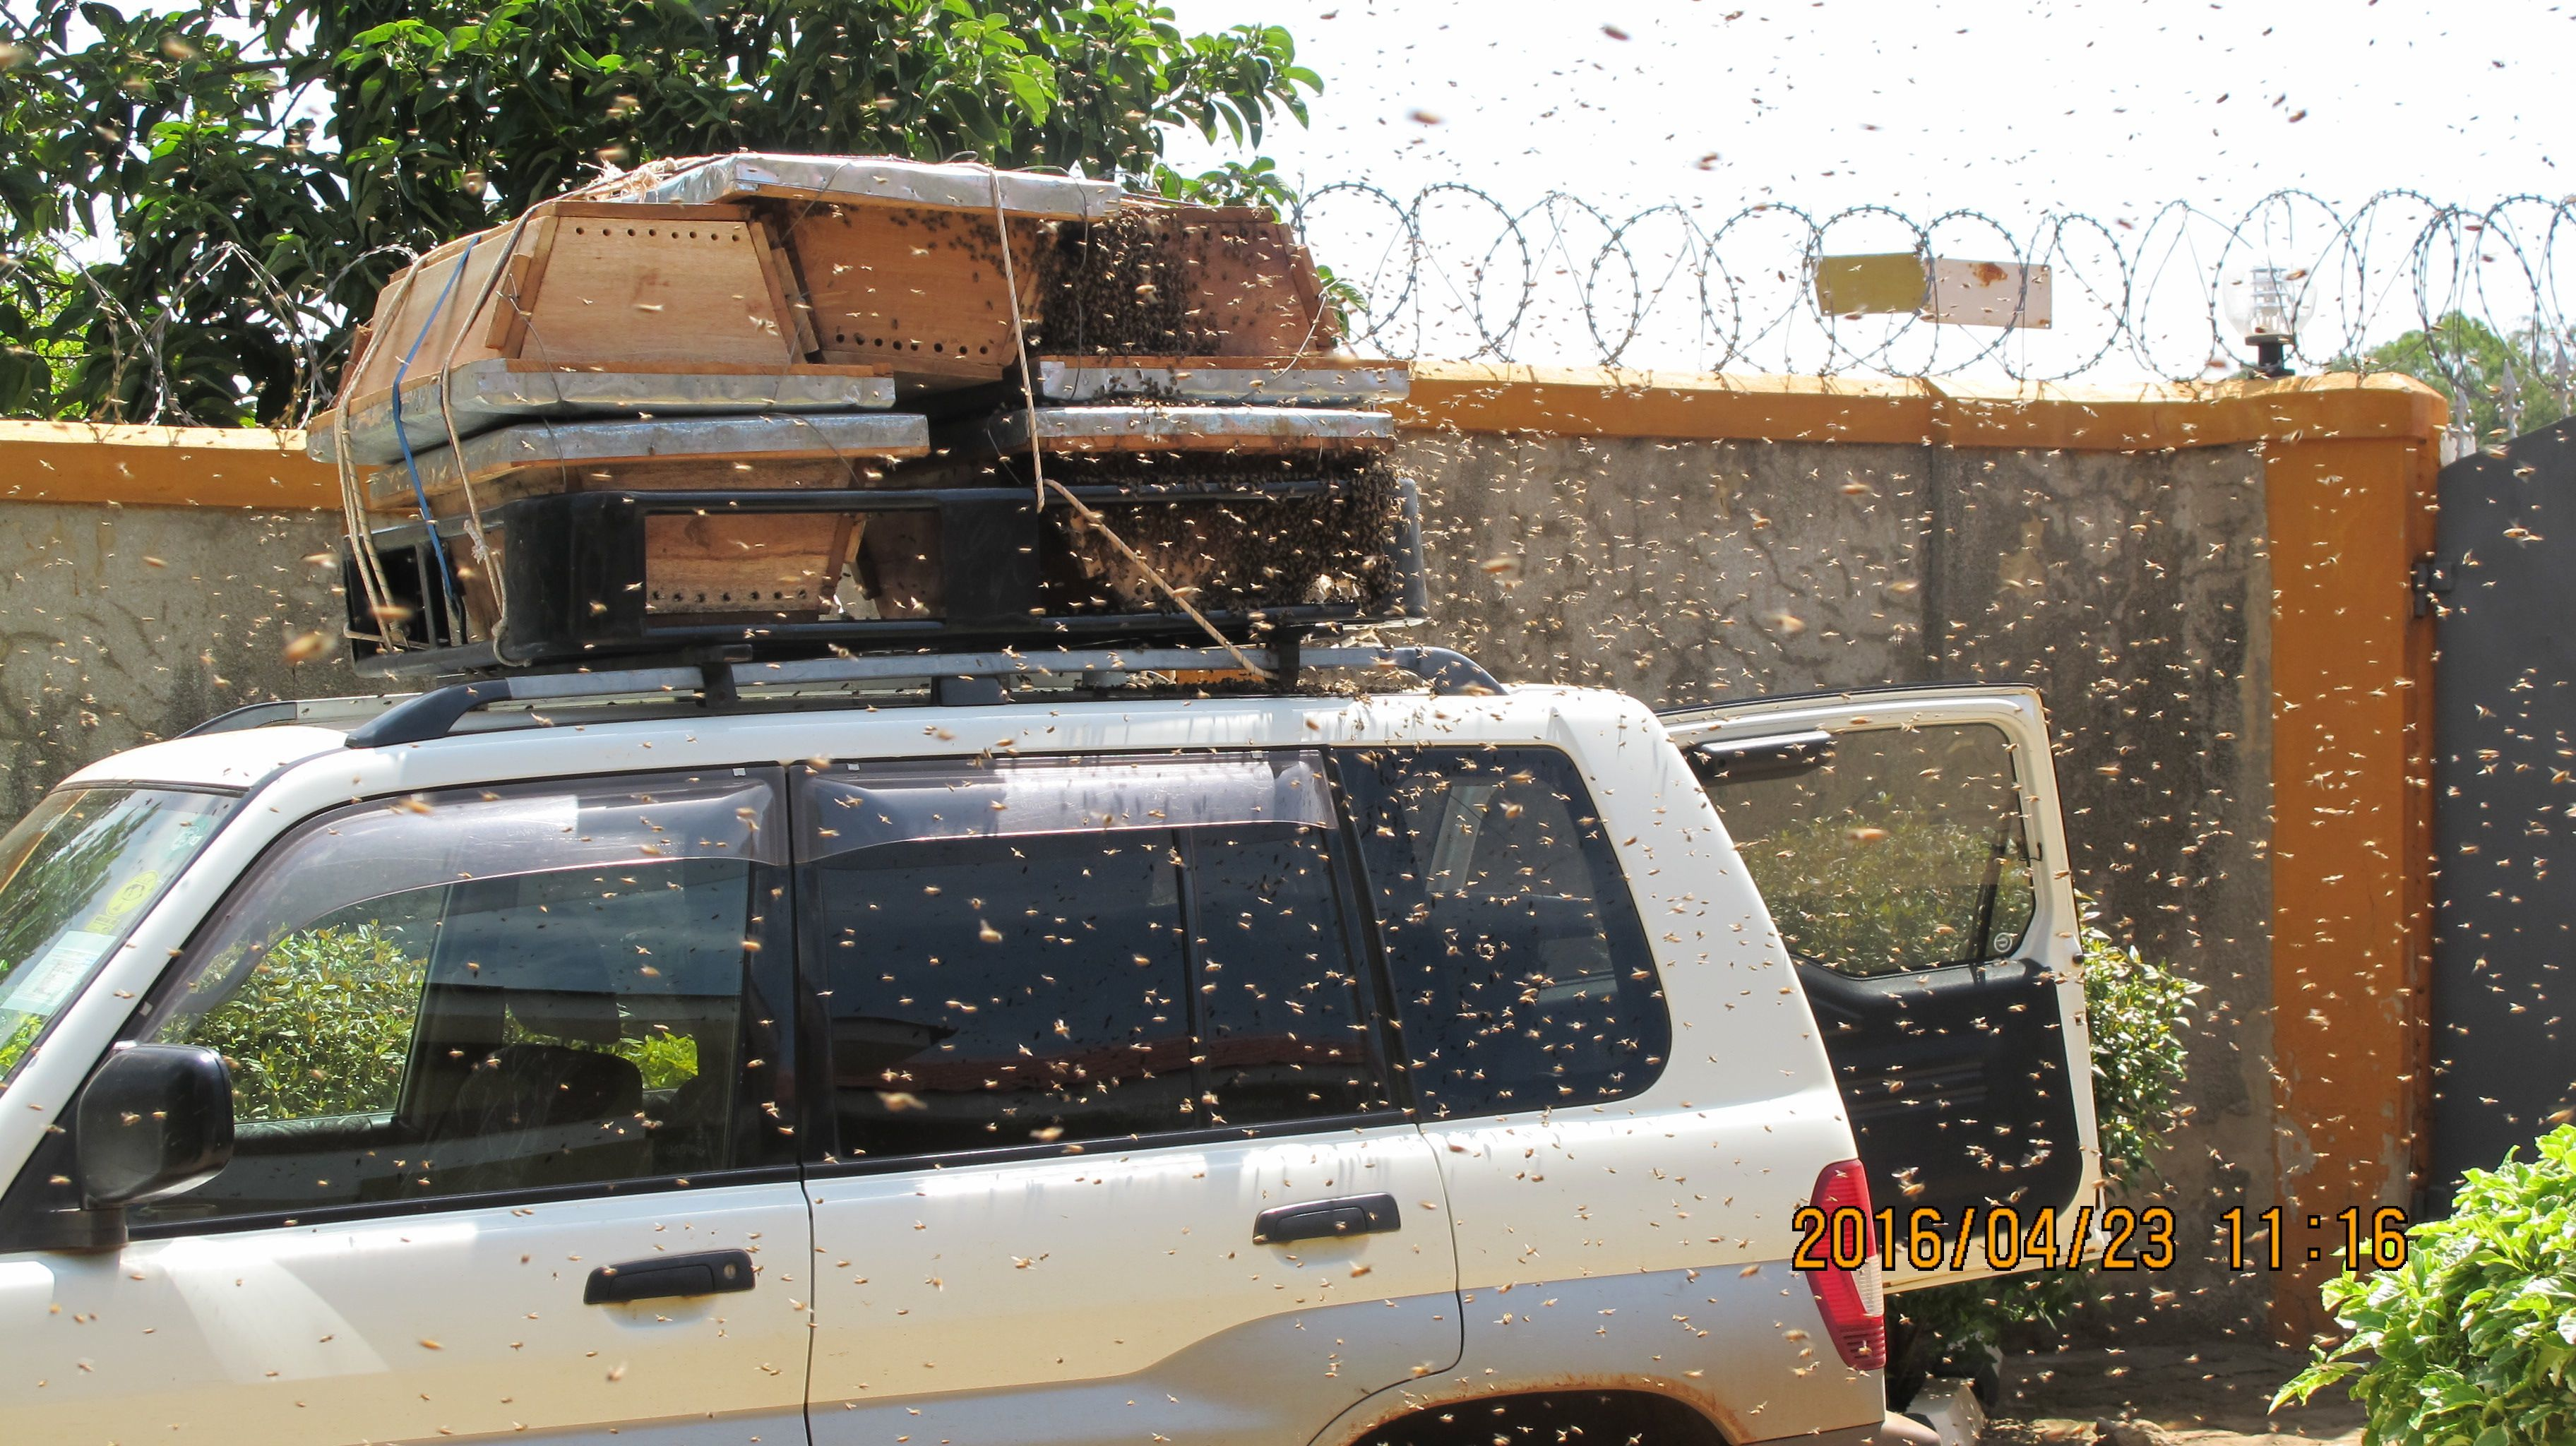 KTB hives loaded on car and ready for the village. We actually had a swarm of bees colonize a hive while we were packing for the village.